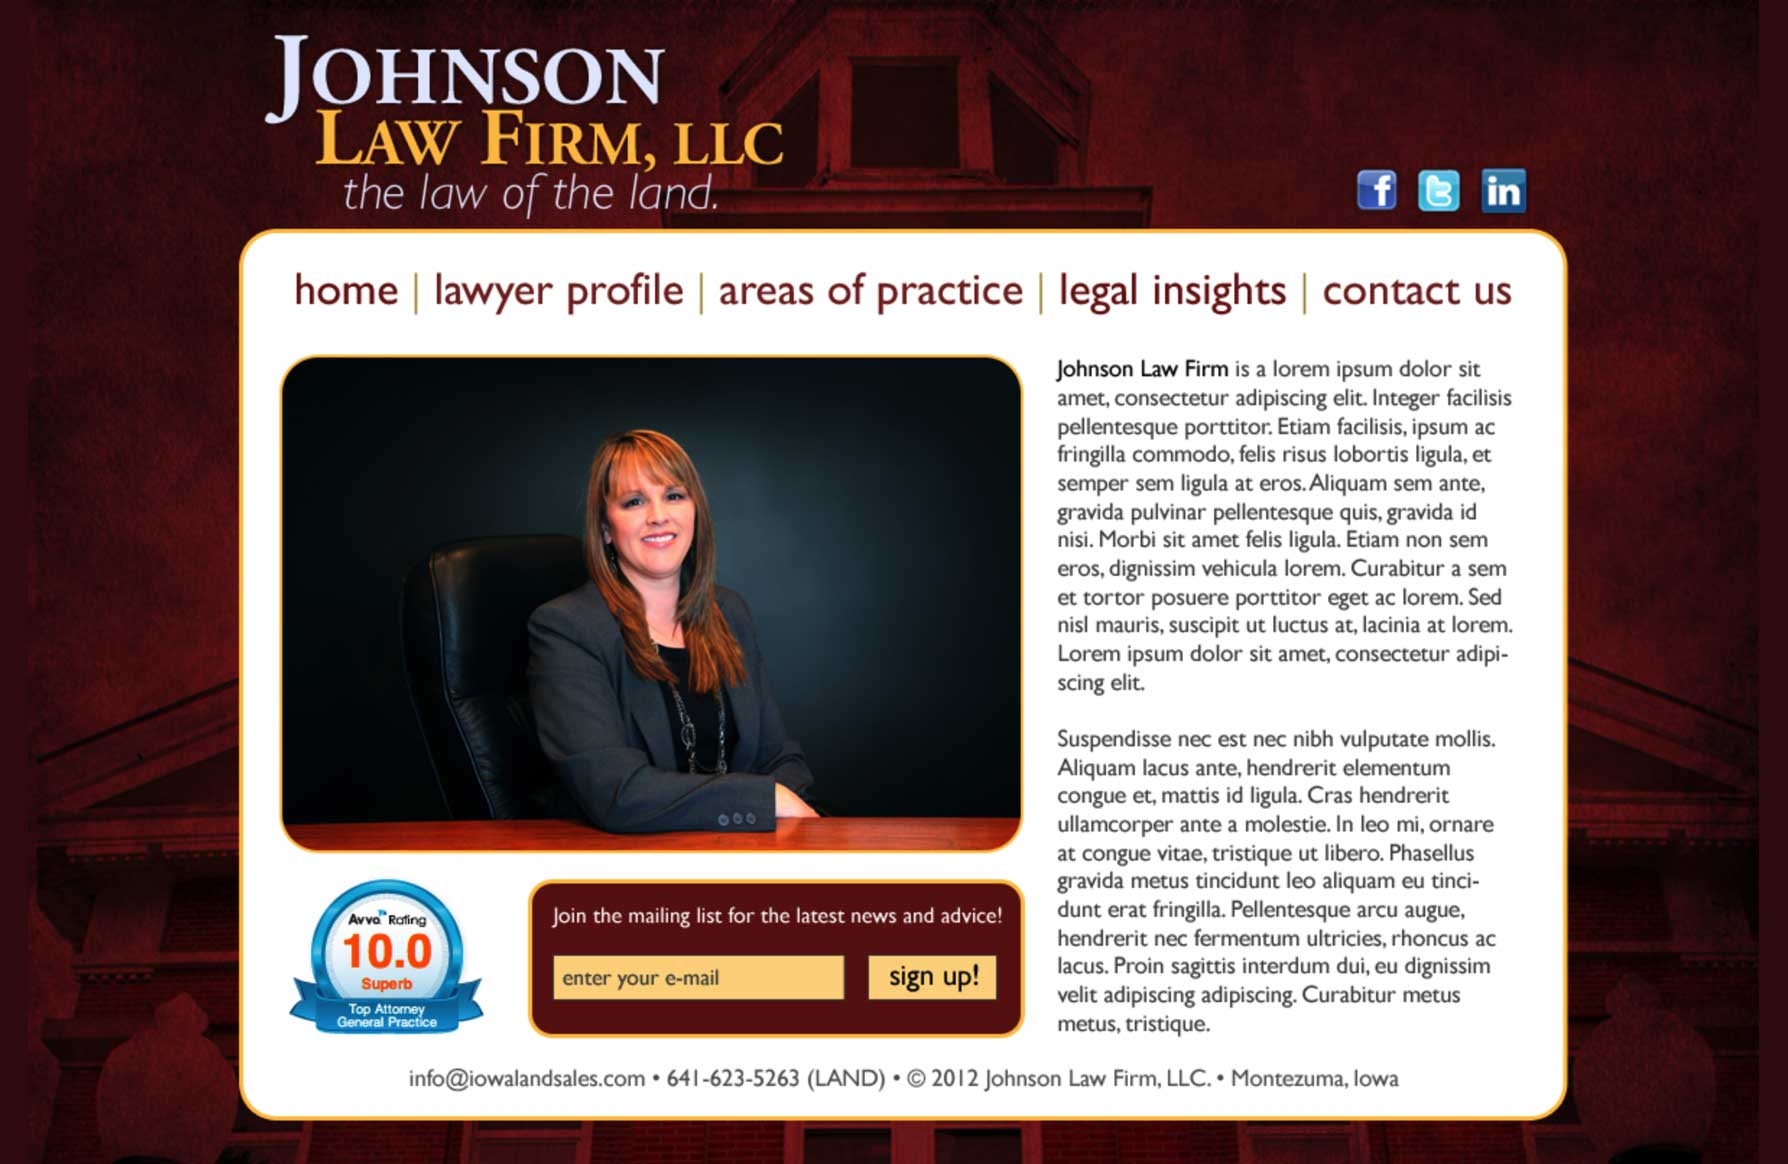 Johnson Law Firm, LLC